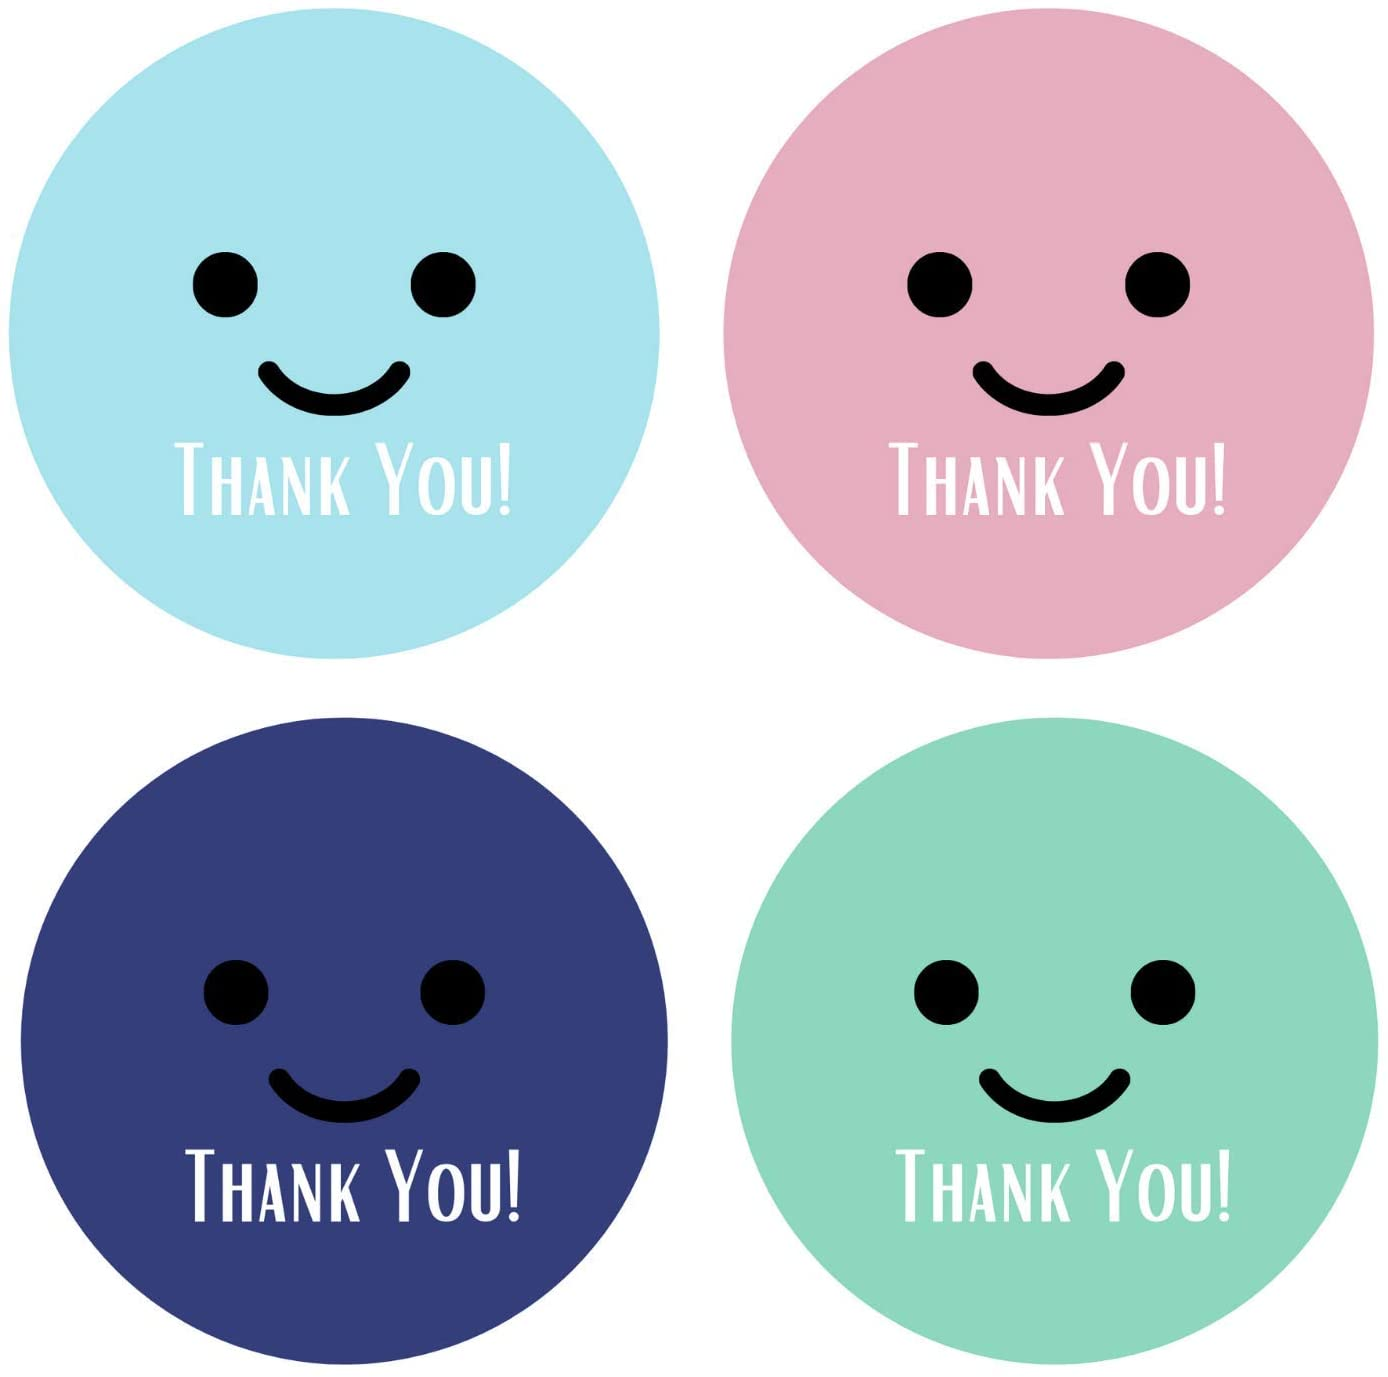 Mobiusea Party Thank You Stickers Roll | Happy Smiley Faces |1.5 inch | Waterproof | 500 Labels for Small Business, Packaging, Mailer Seal Stickers, Baby Showers, Kids Birthday Party | 4 Color Designs